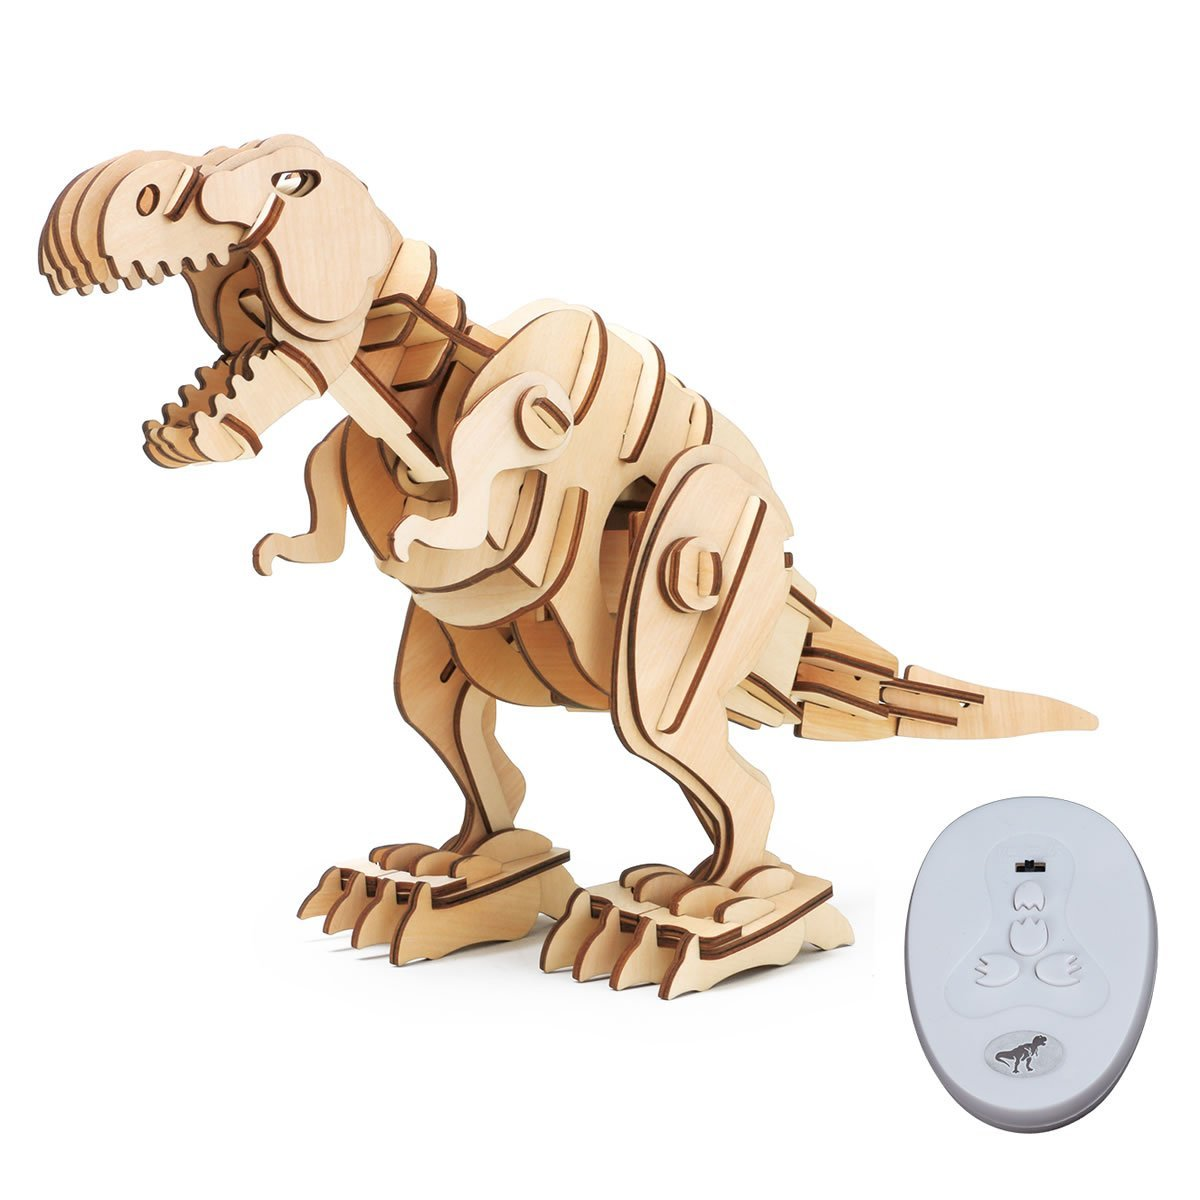 Robotime: Remote controlled T-Rex image